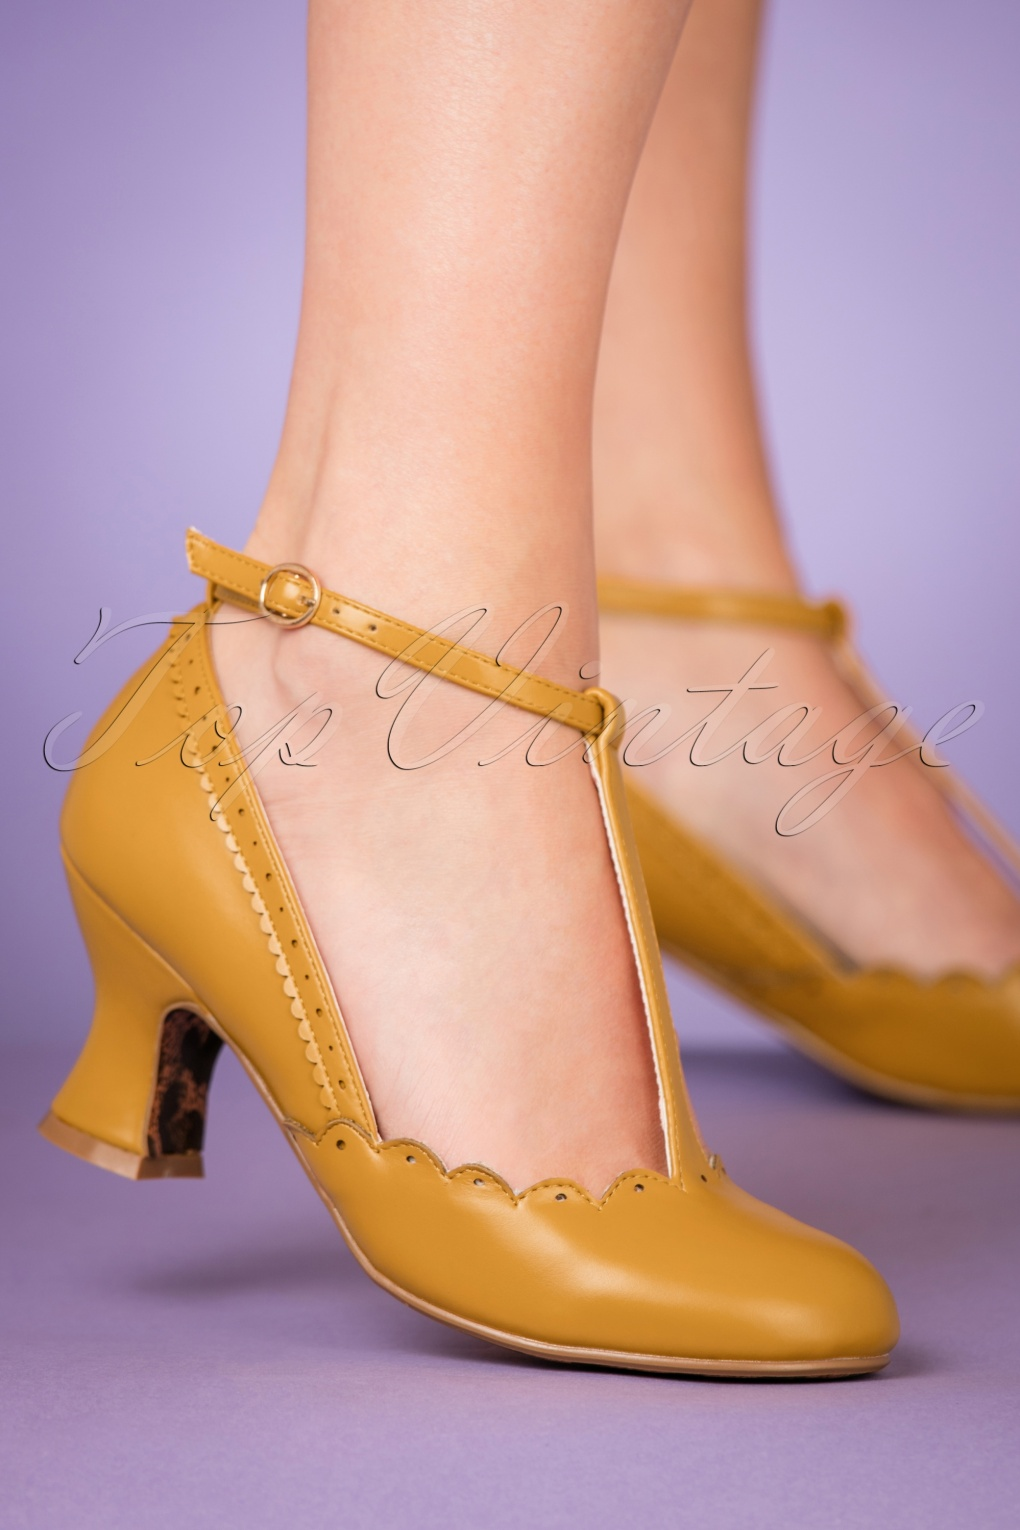 1950s Style Shoes | Heels, Flats, Saddle Shoes 50s Penny T-Strap Pumps in Mustard Yellow £59.15 AT vintagedancer.com